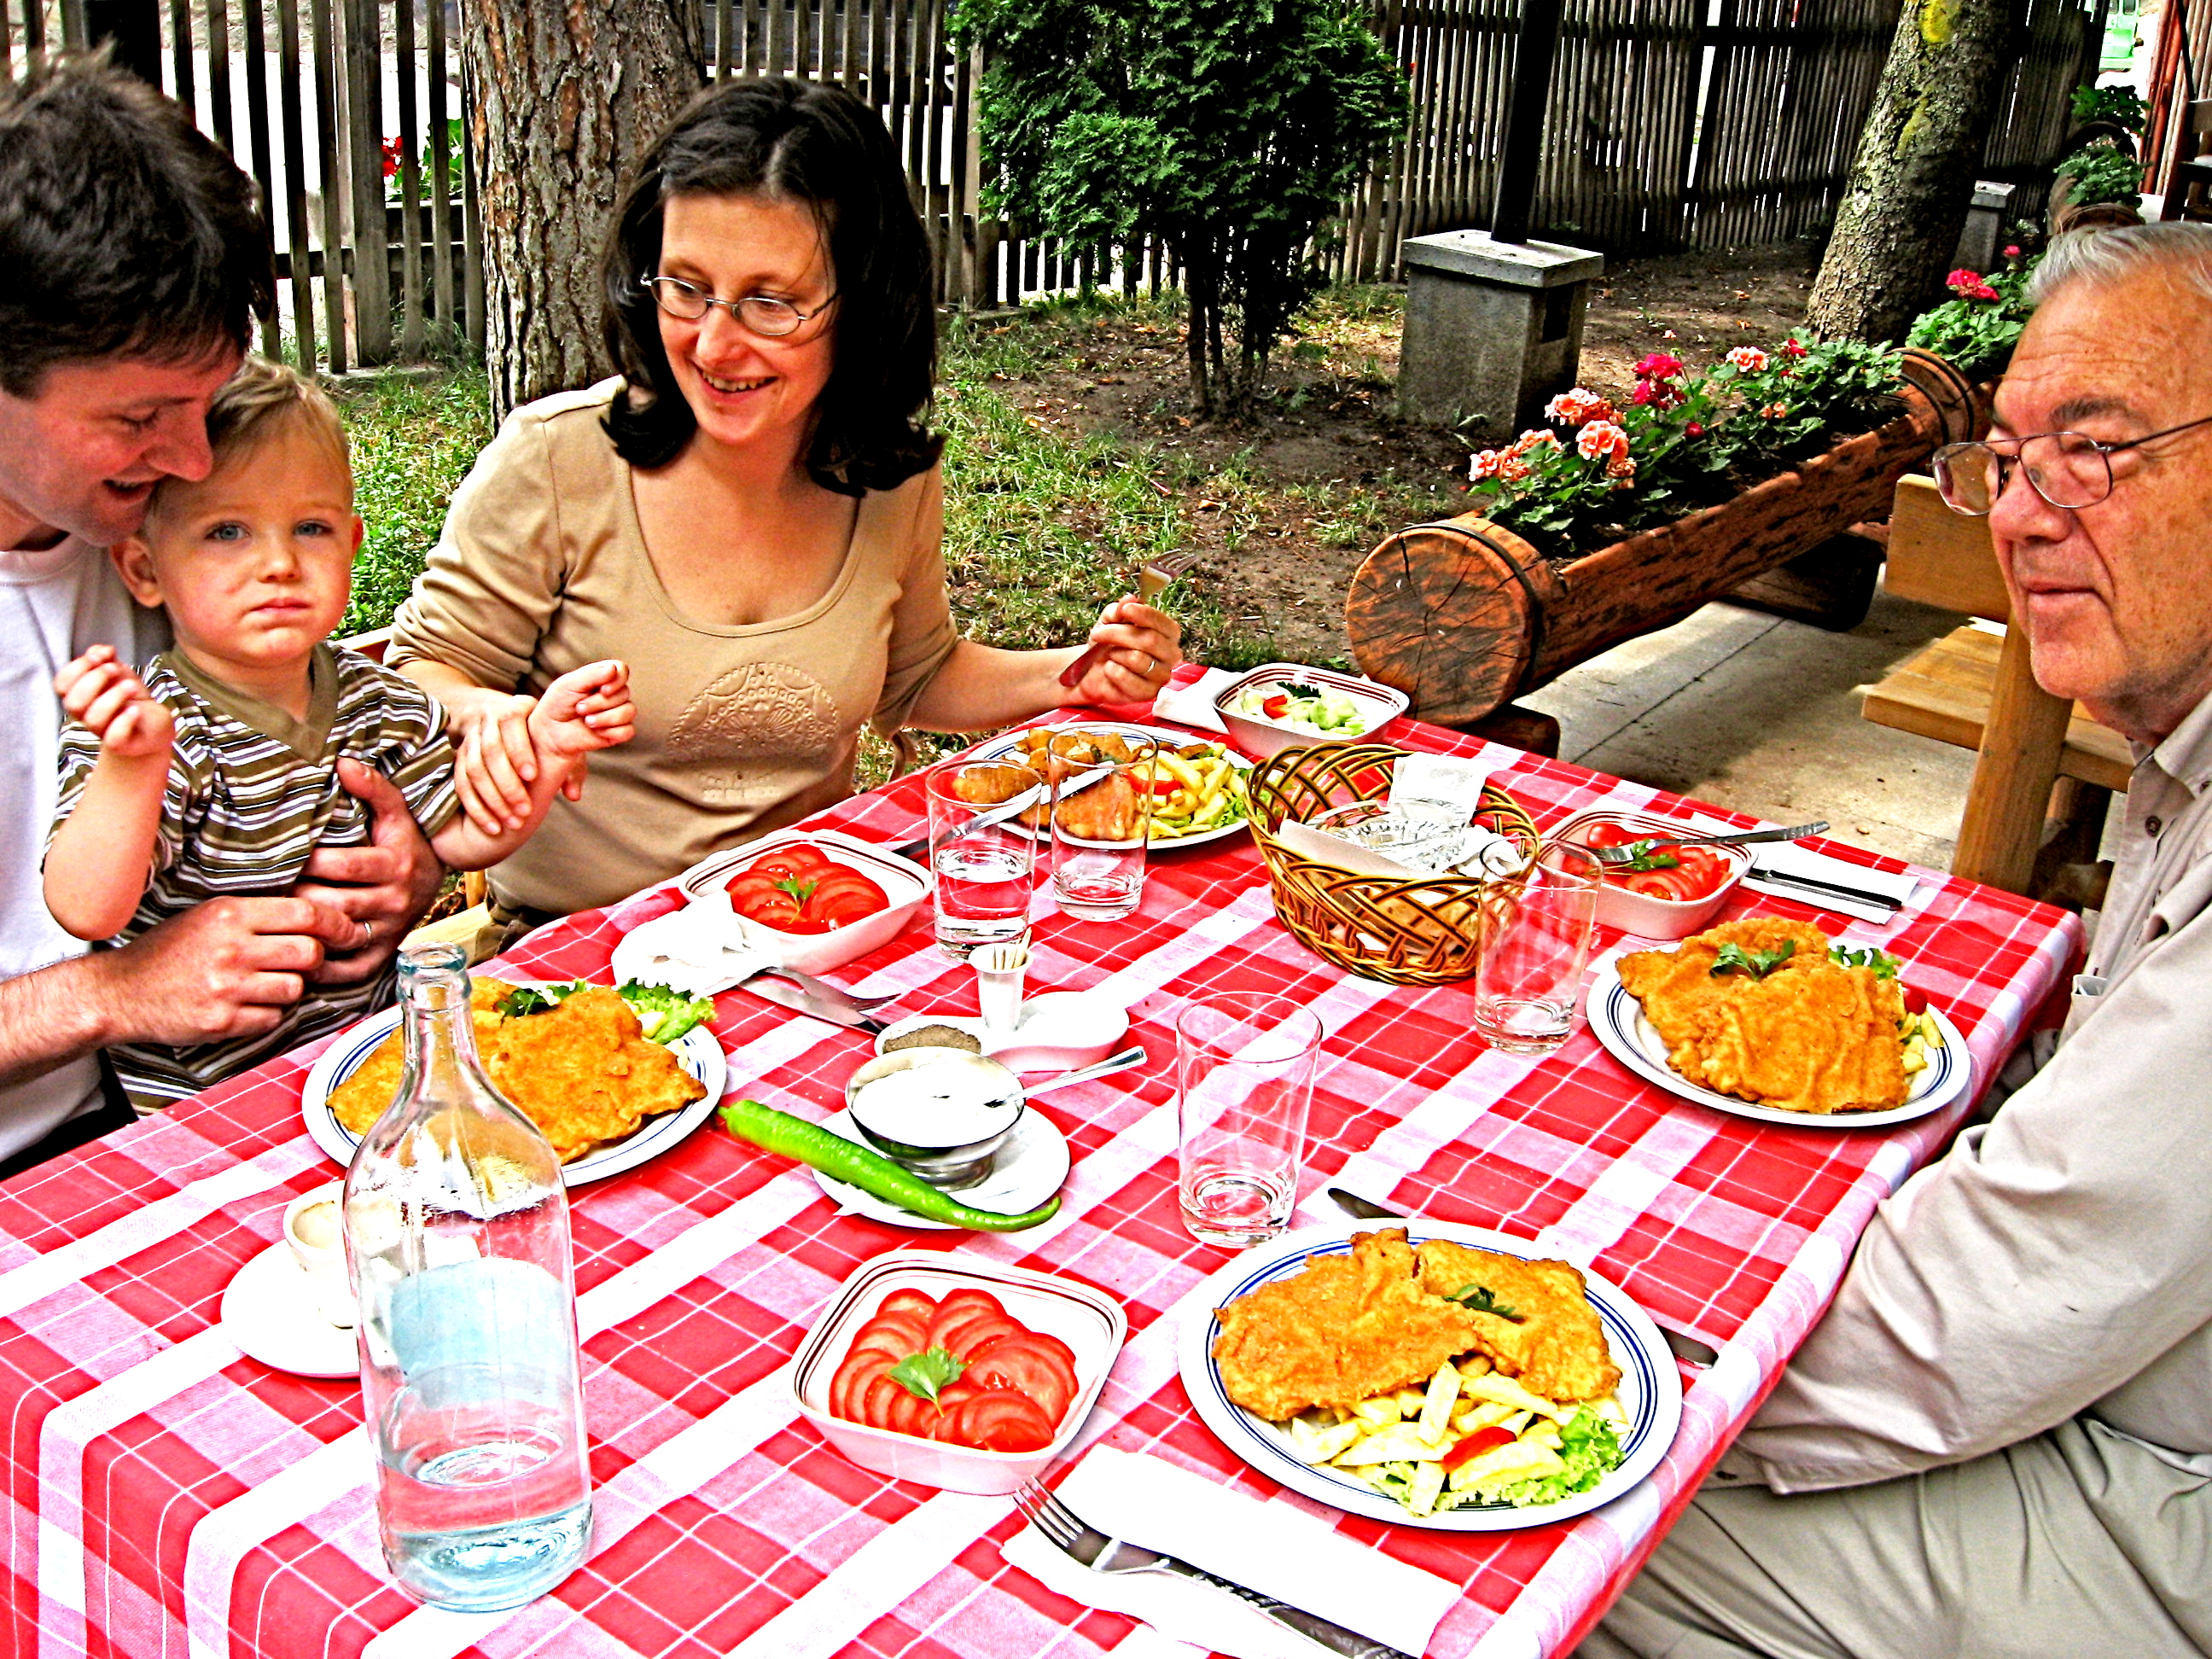 Attila, Zsuzsa joined us for dinner at an outdoor restaurant